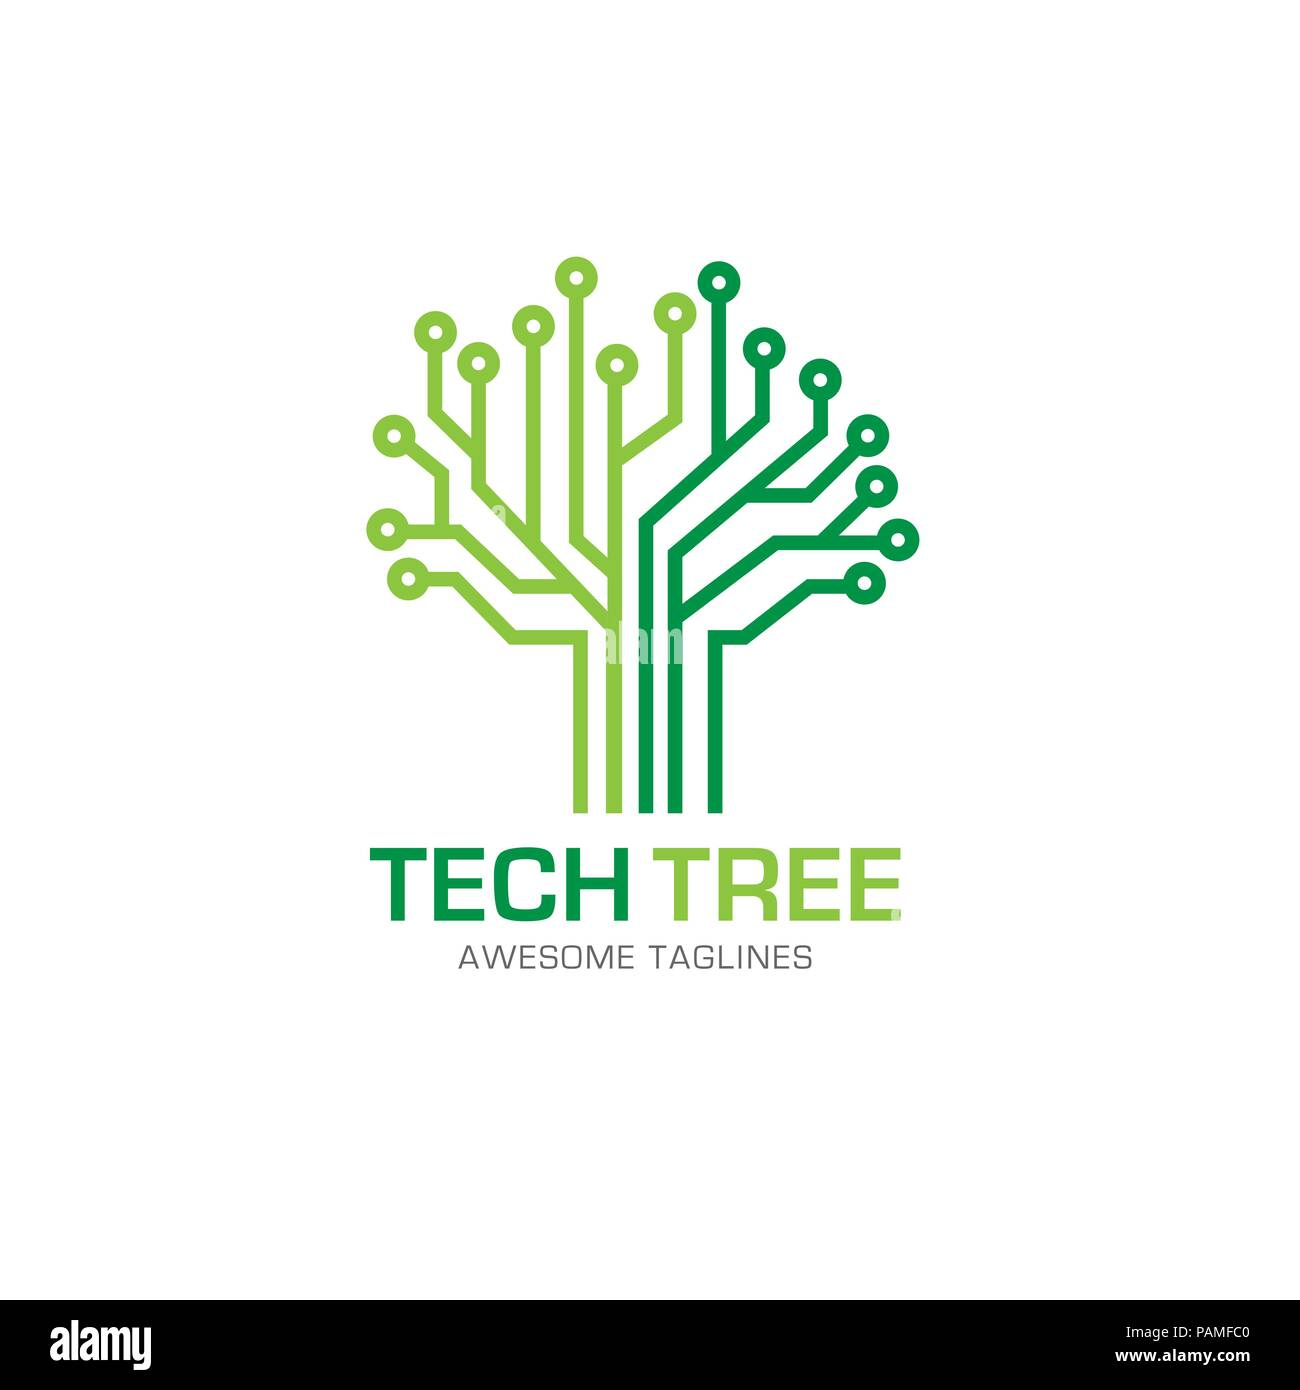 tech tree logo concept- vector logo concept illustration ...